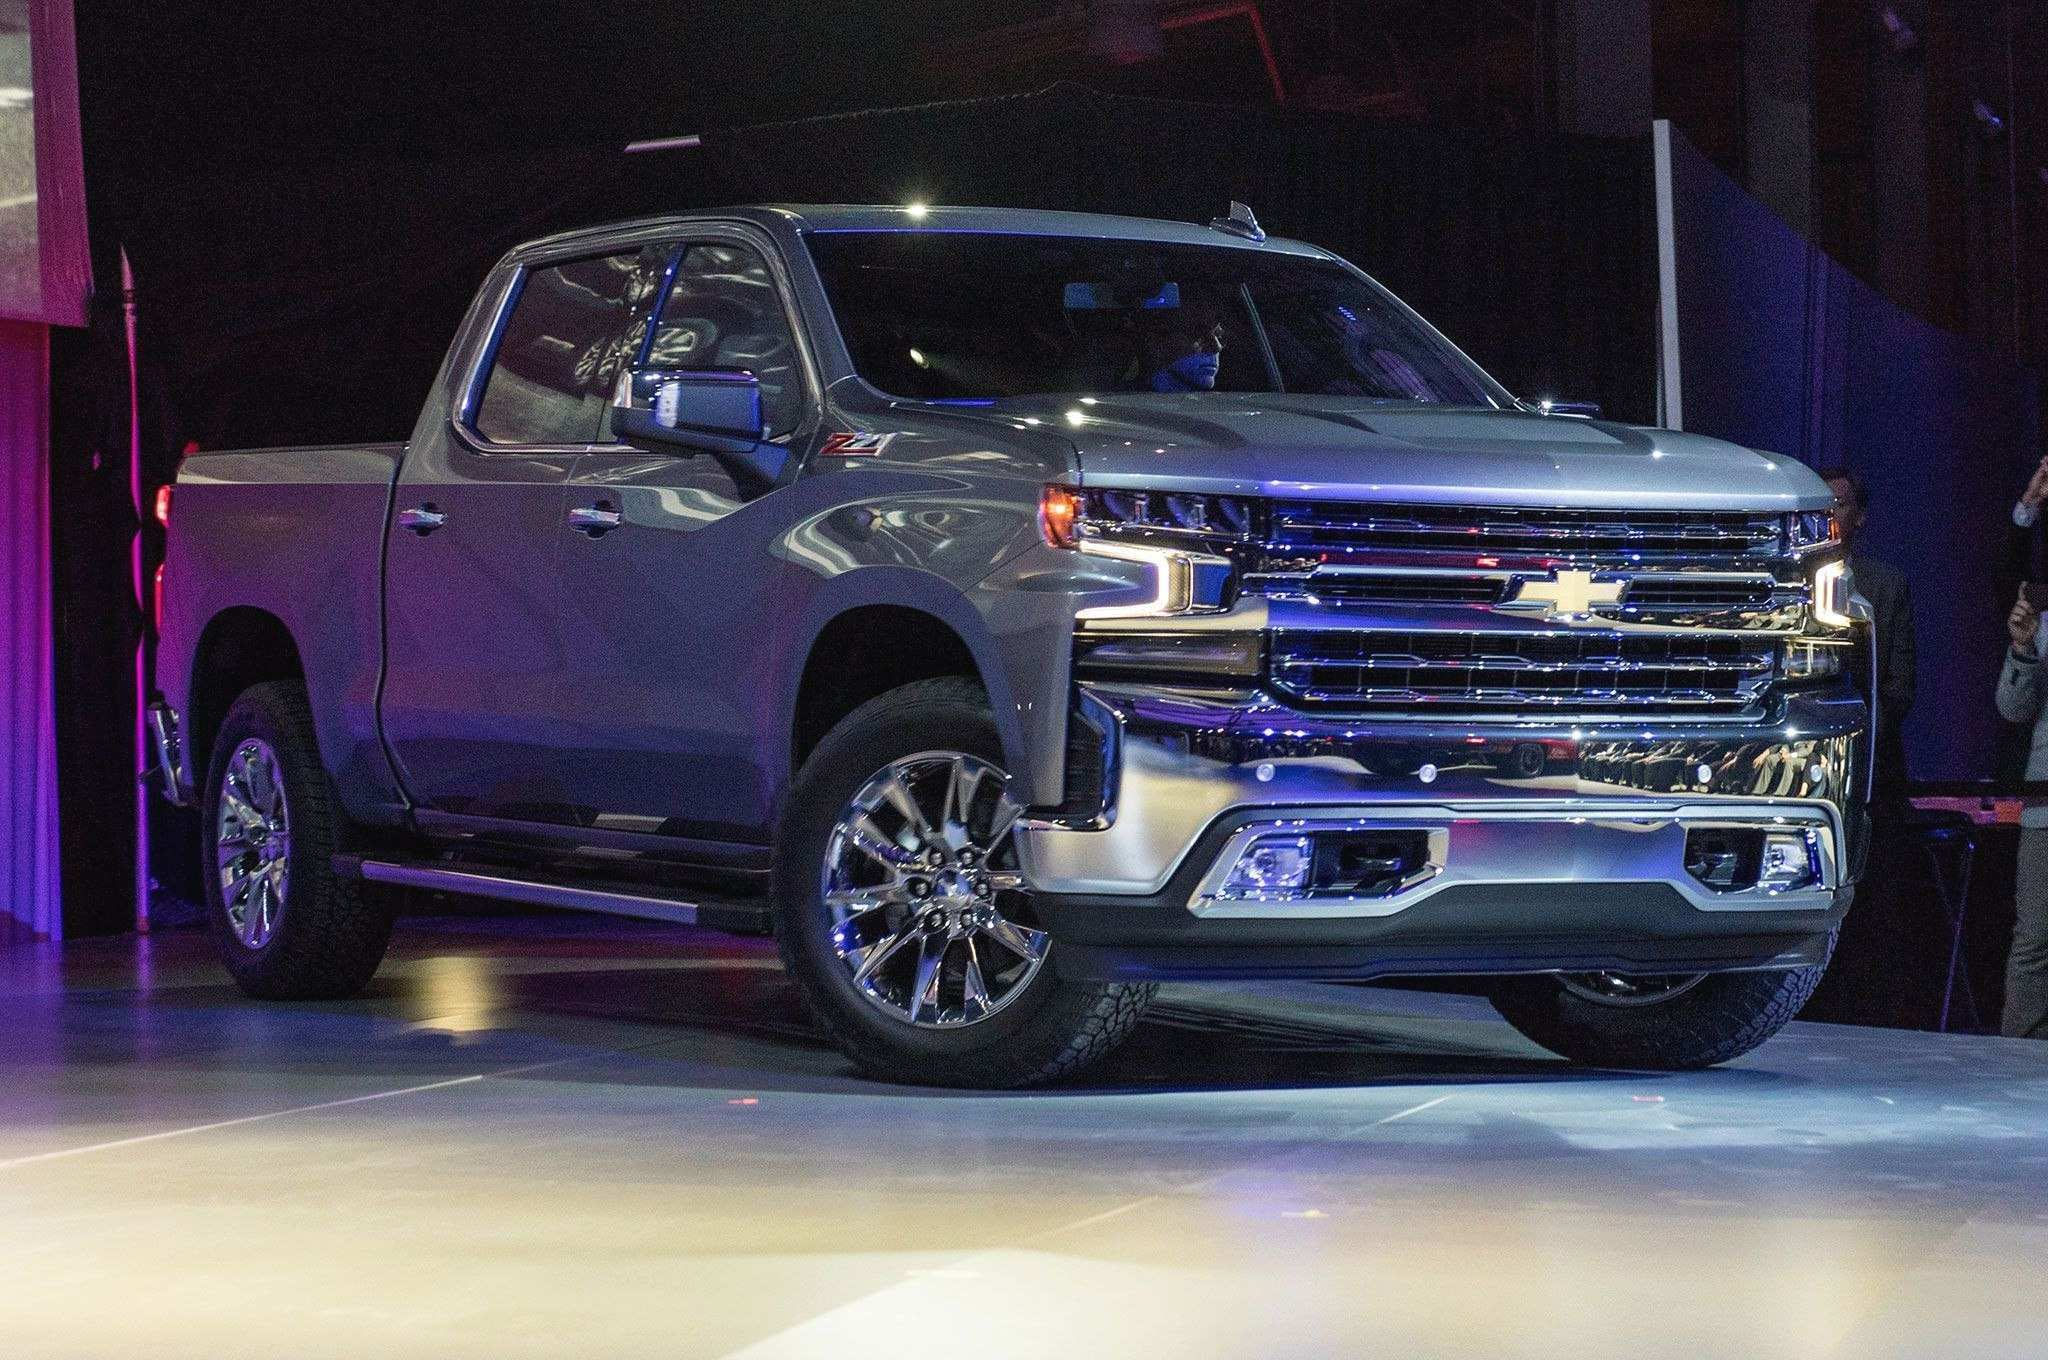 44 All New 2020 Chevy Avalanche Redesign And Concept